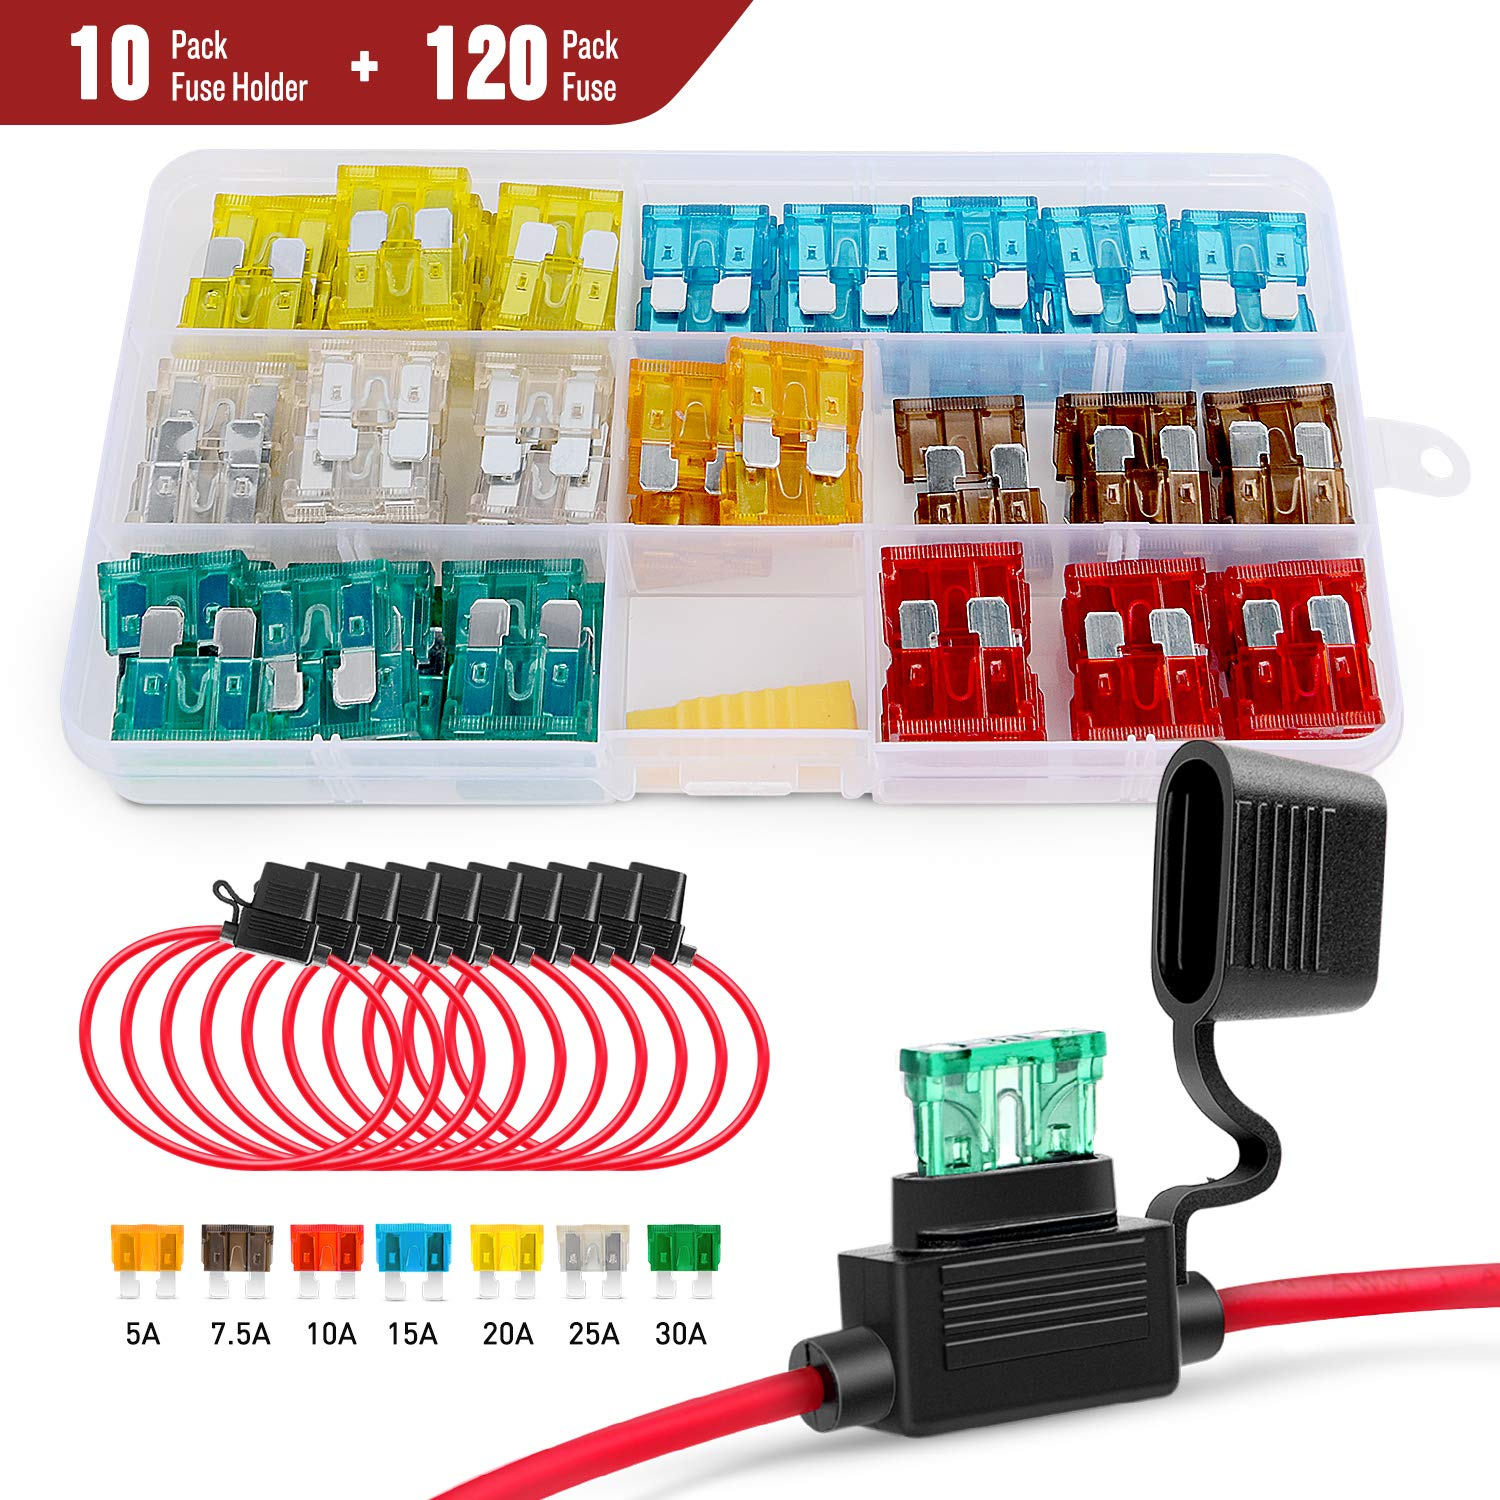 Nilight 120 Pcs Standard Blade Fuse 5A/7.5A/10A/15A/20A/25A/30A AMP Assorted Set with 10 Pack 14AWG ATC/ATO Inline Fuse Holder, 2 Years Warranty by Nilight